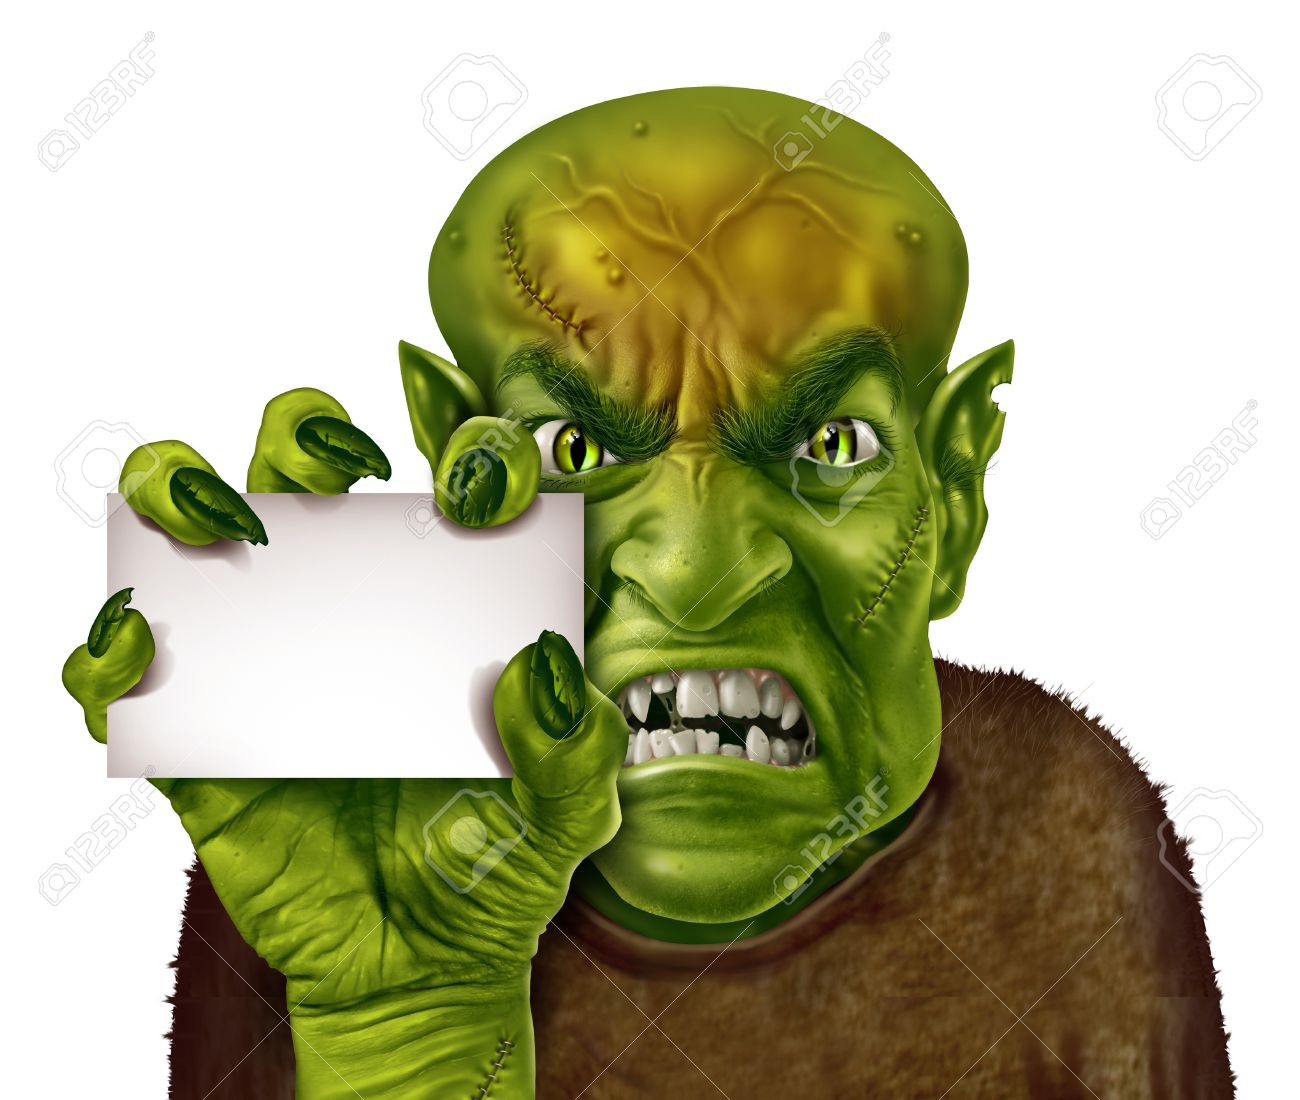 Monster holding a blank white sign with a zombie or greedy man with a creepy hand holding an ad card as a spooky halloween or scary symbol with textured green skin wrinkled creepy fingers and stitches isolated on white Stock Photo - 15739380